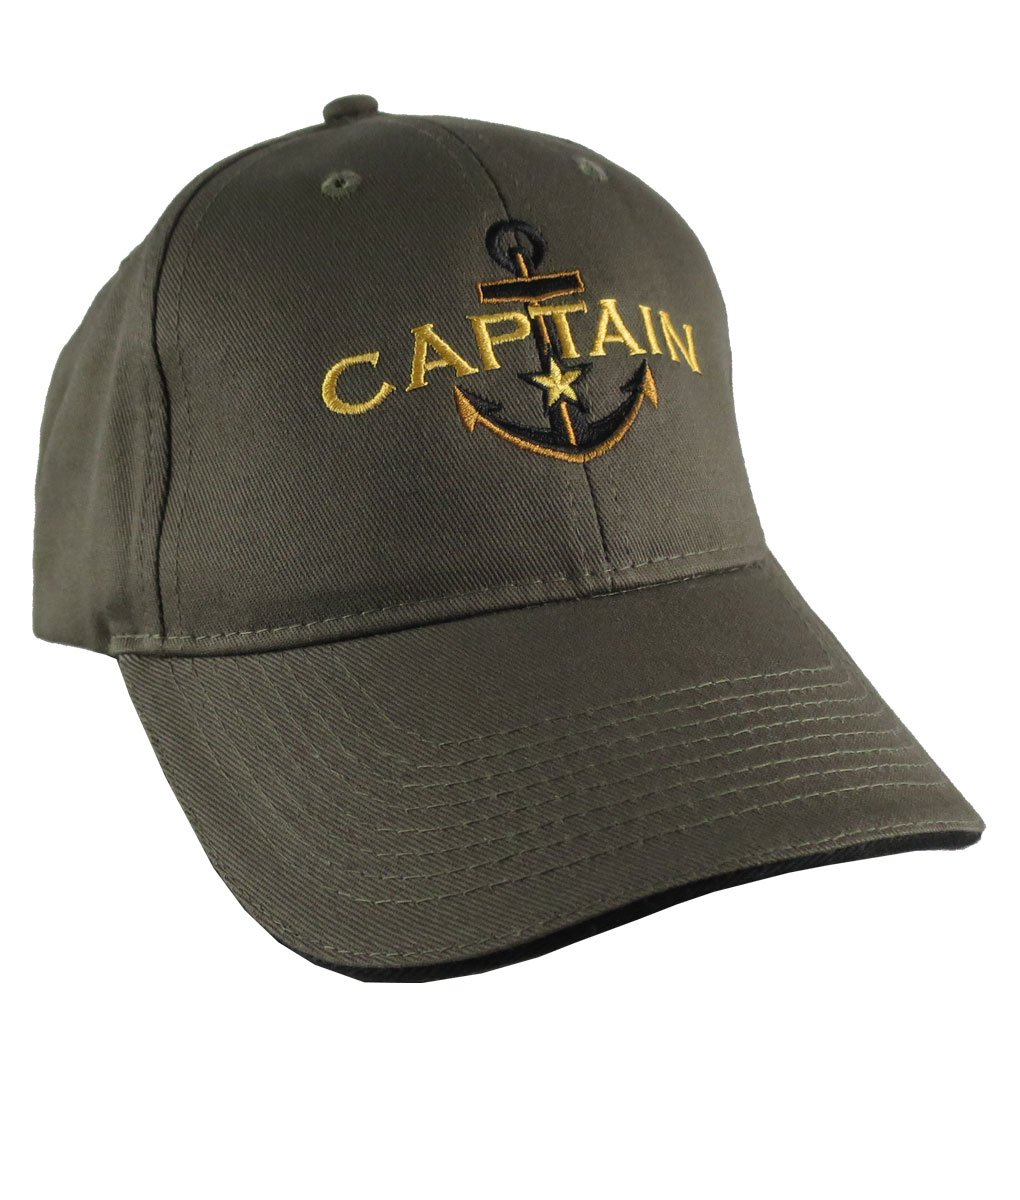 Personalized Captain Star Anchor Embroidery Adjustable Khaki and Black Structured Fashion Baseball Cap + Options to Personalize Side Back